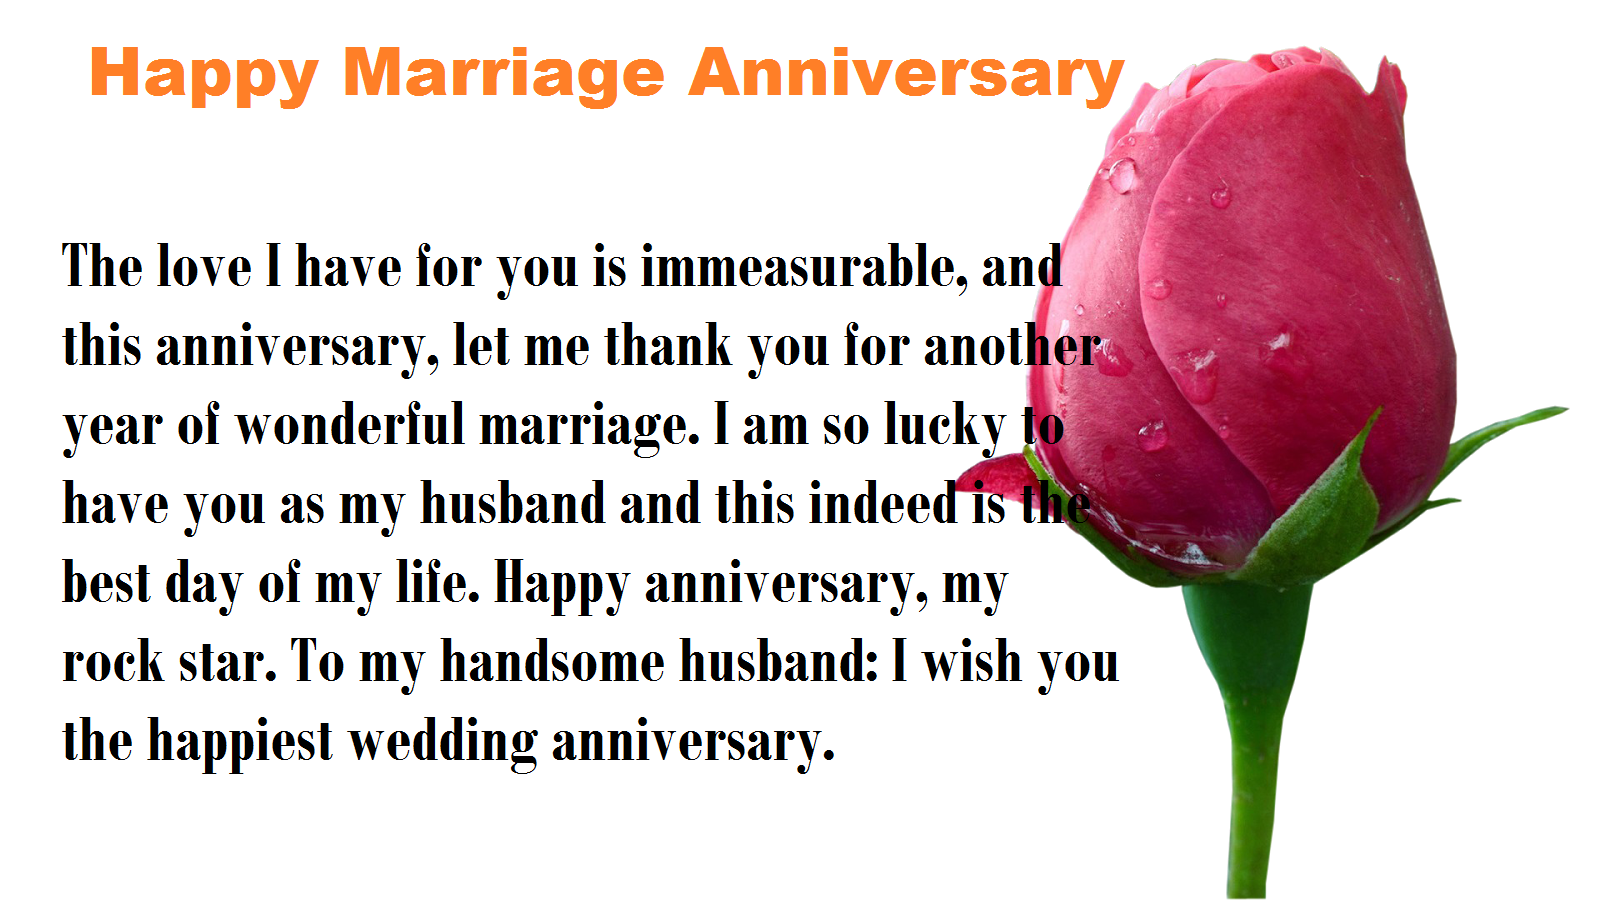 Happy Marriage Anniversary Wishesquotes Wallpaper My Site